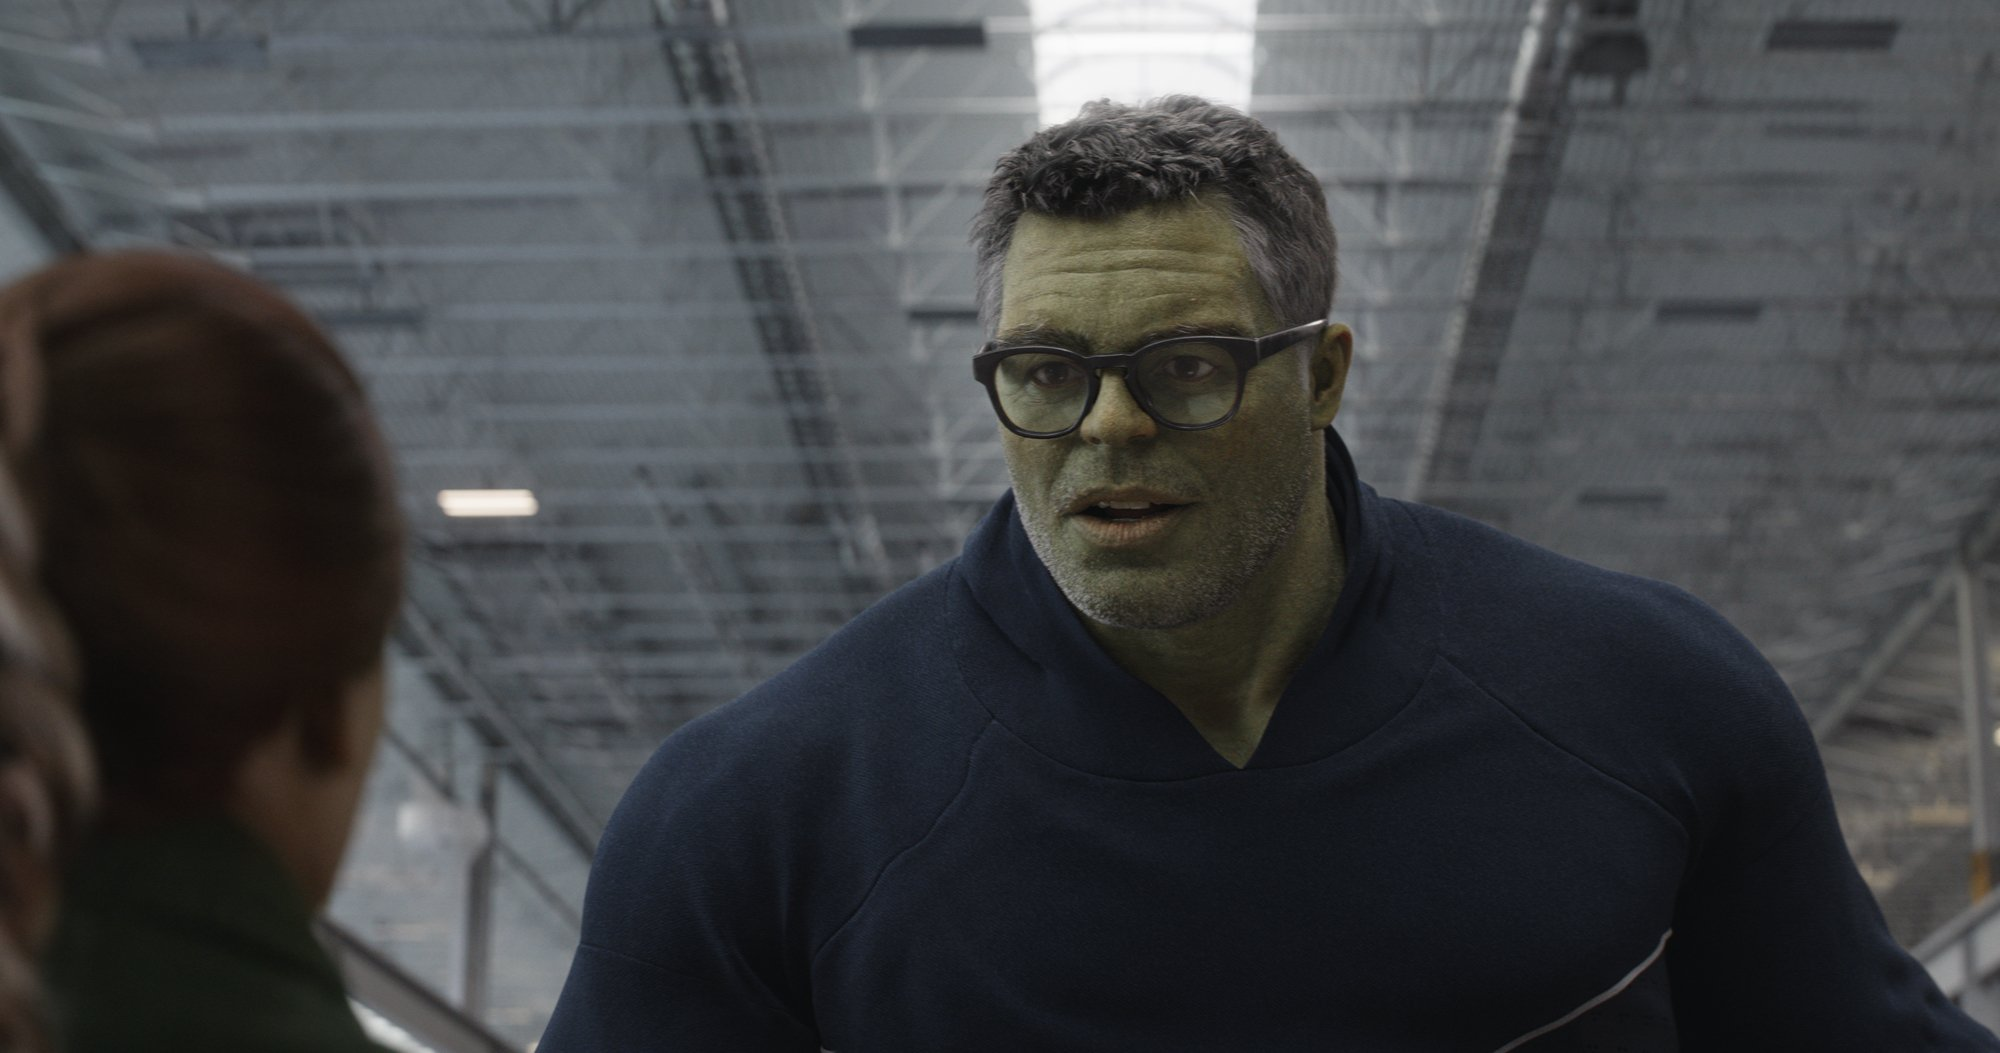 Photo du film Avengers: Endgame avec Smart Hulk (Mark Ruffalo)